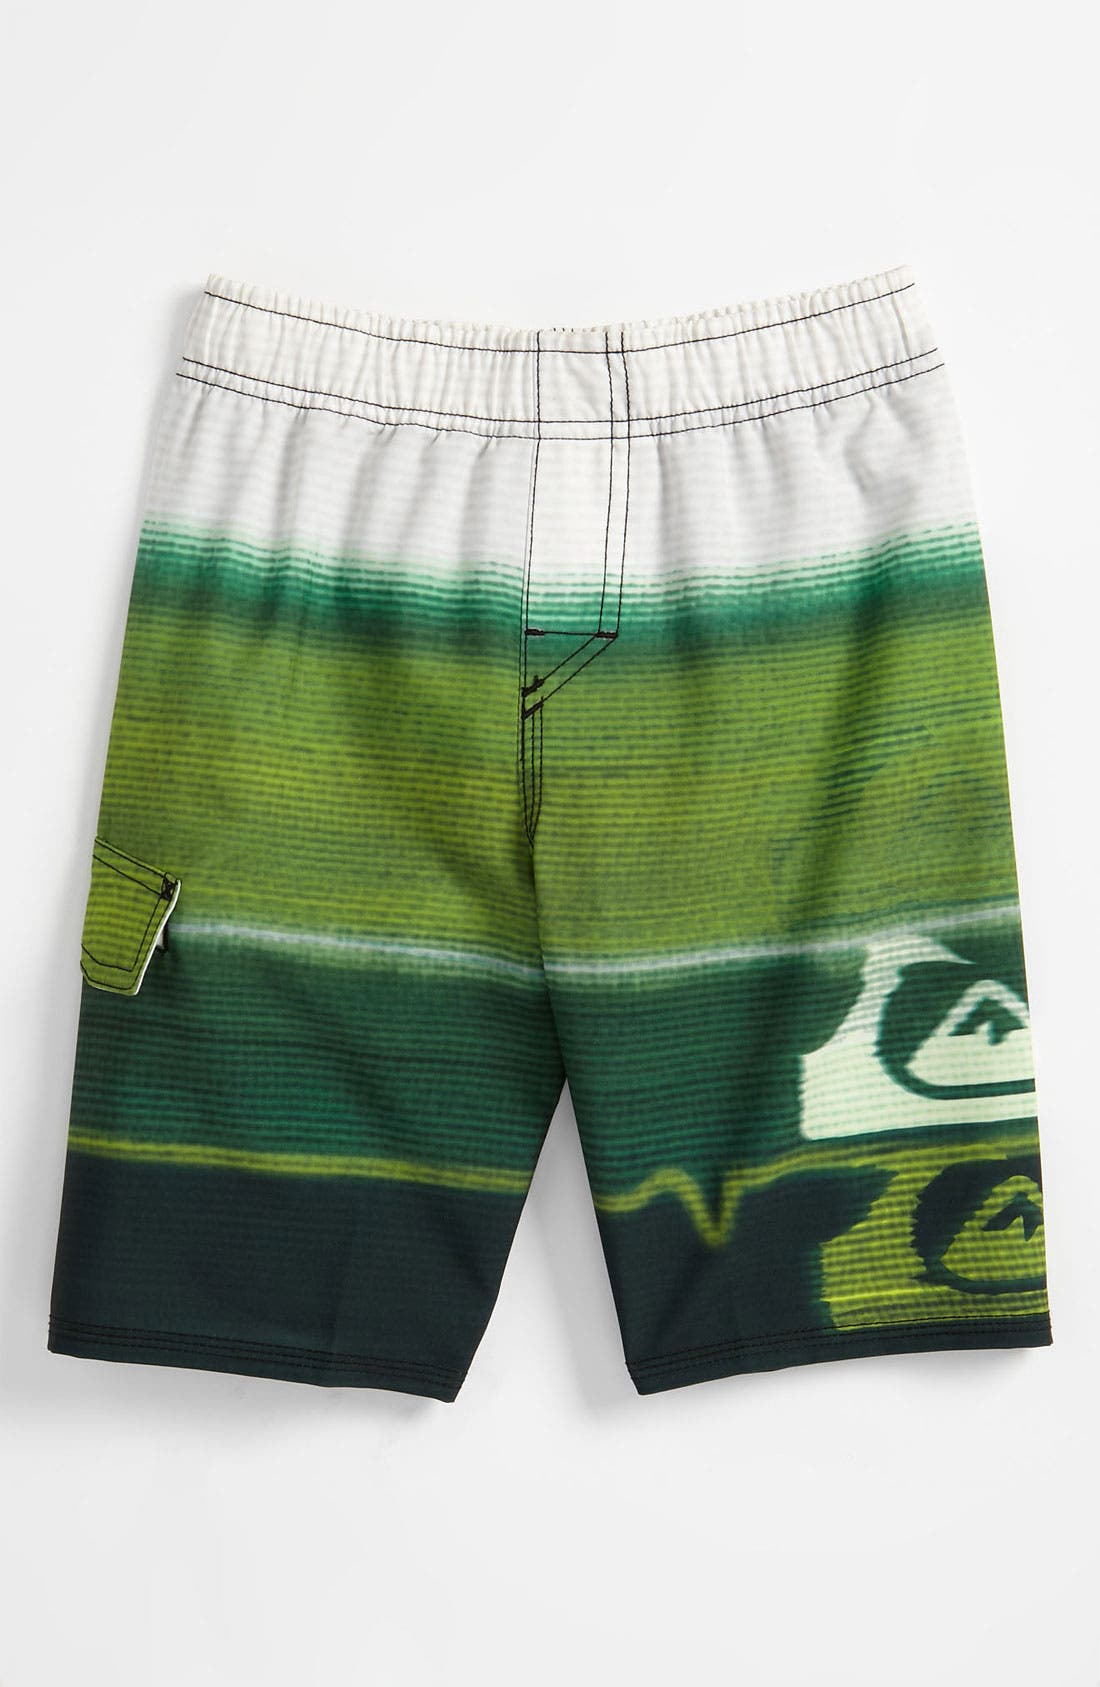 Main Image - Quiksilver 'Bravo' Board Shorts (Big Boys)